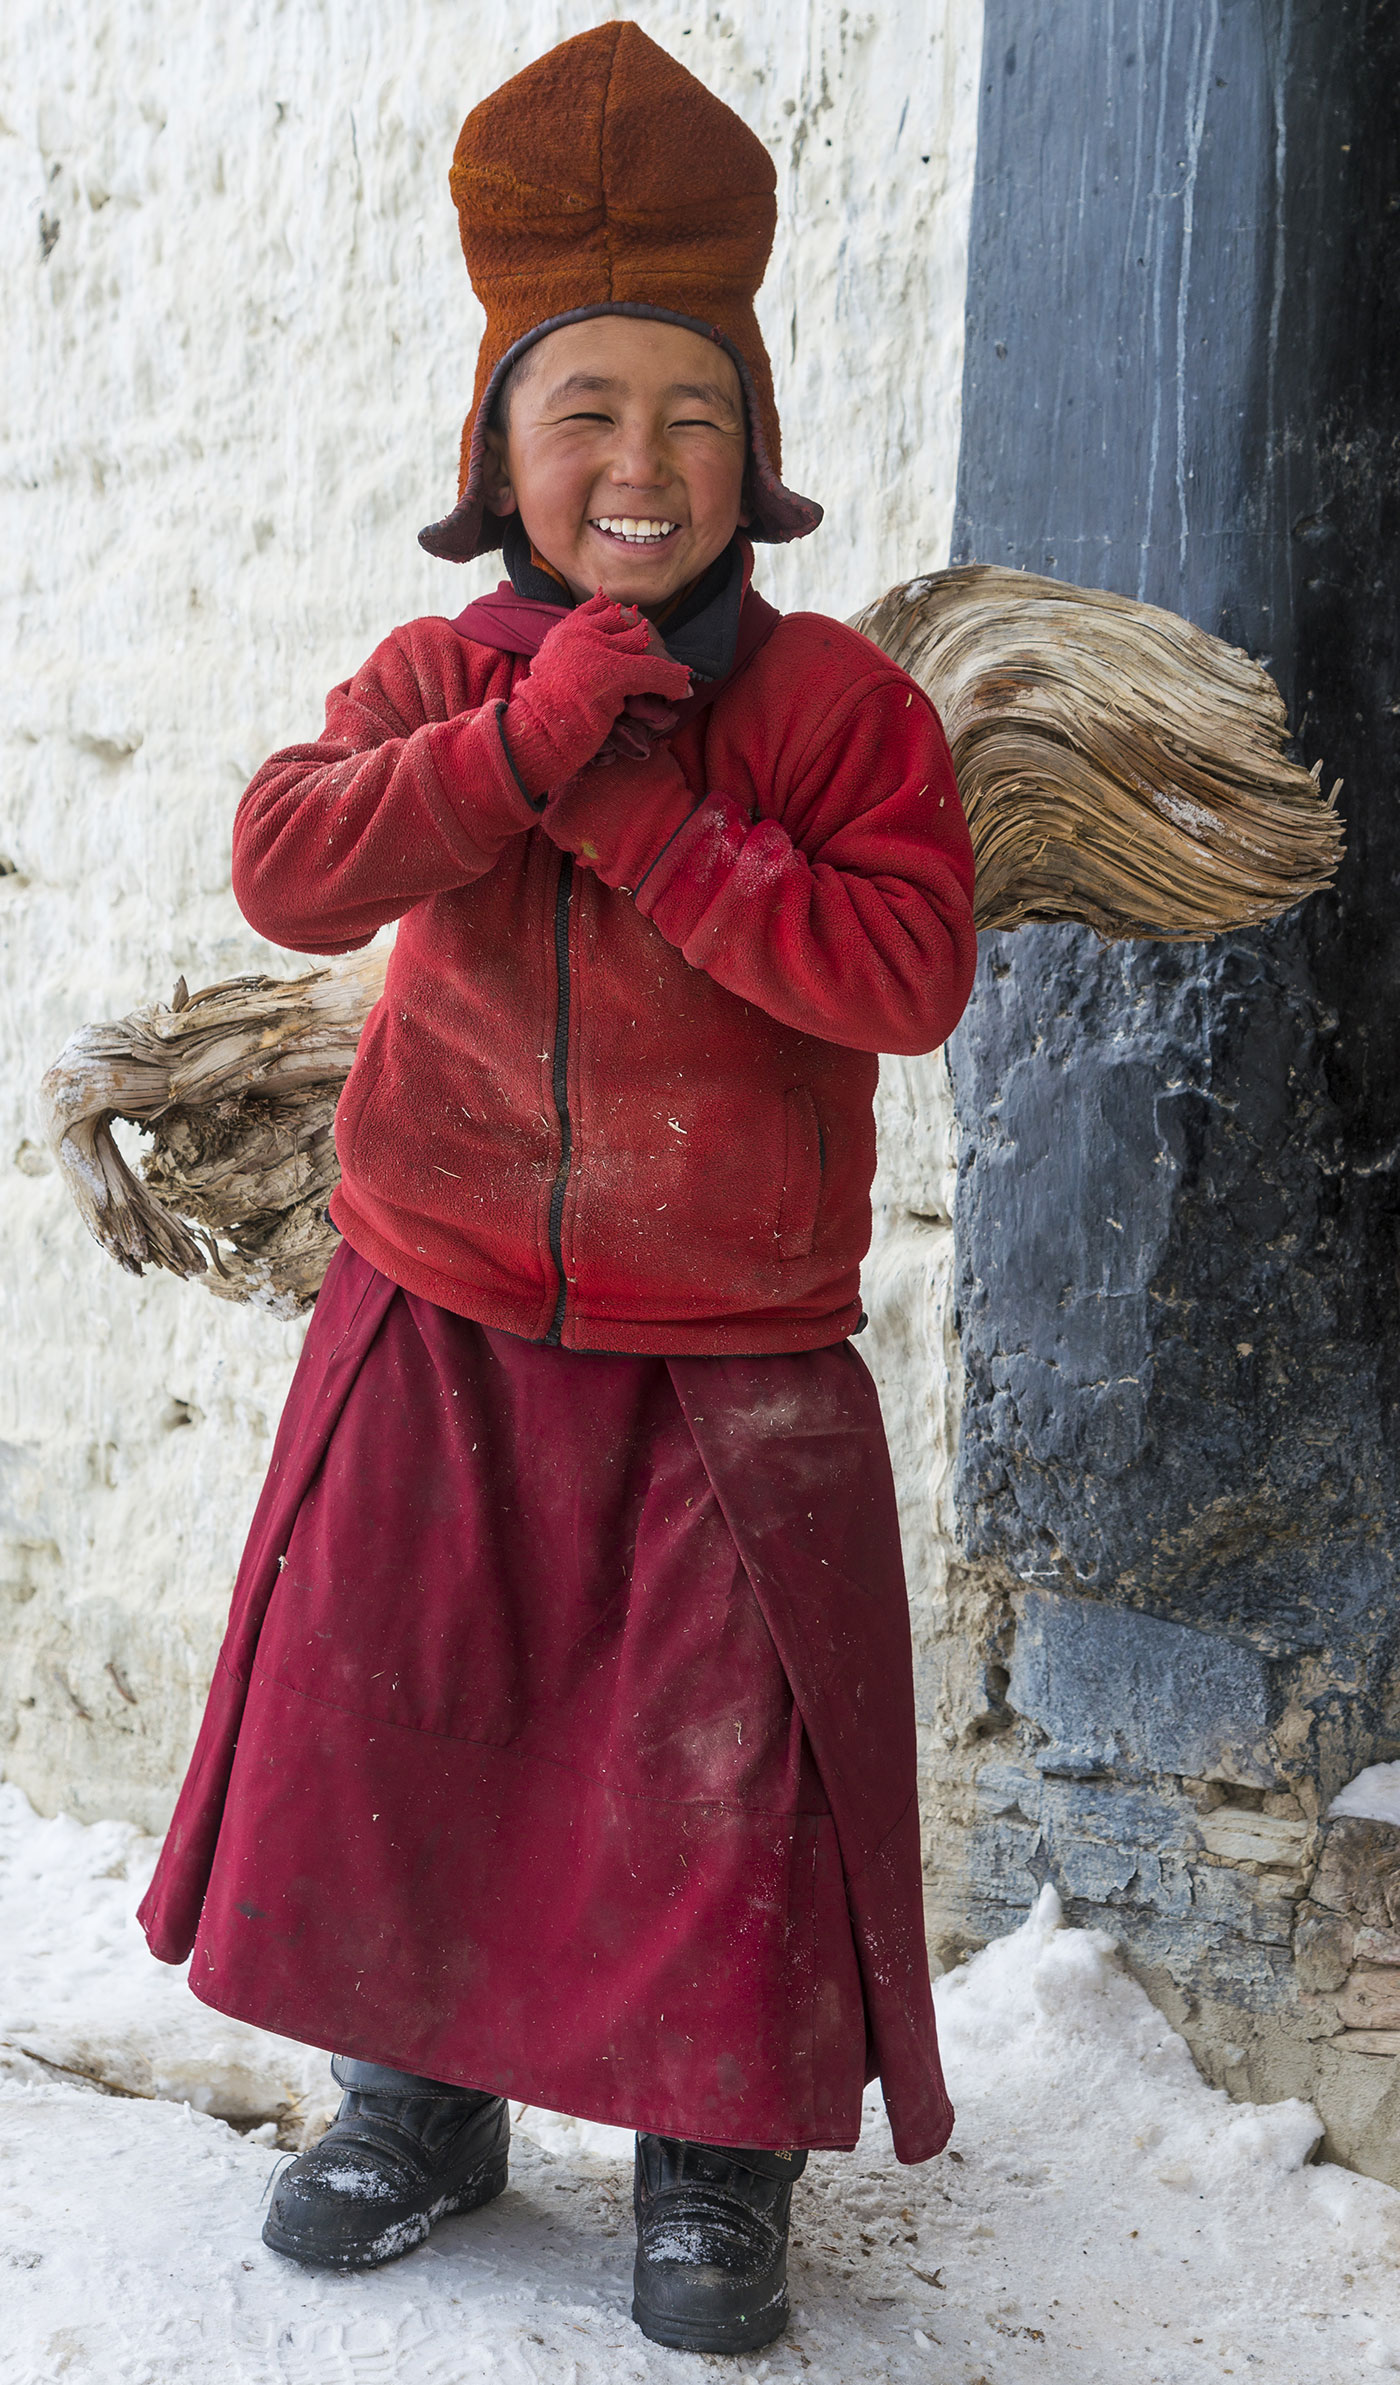 A boy in Zanskar, India.